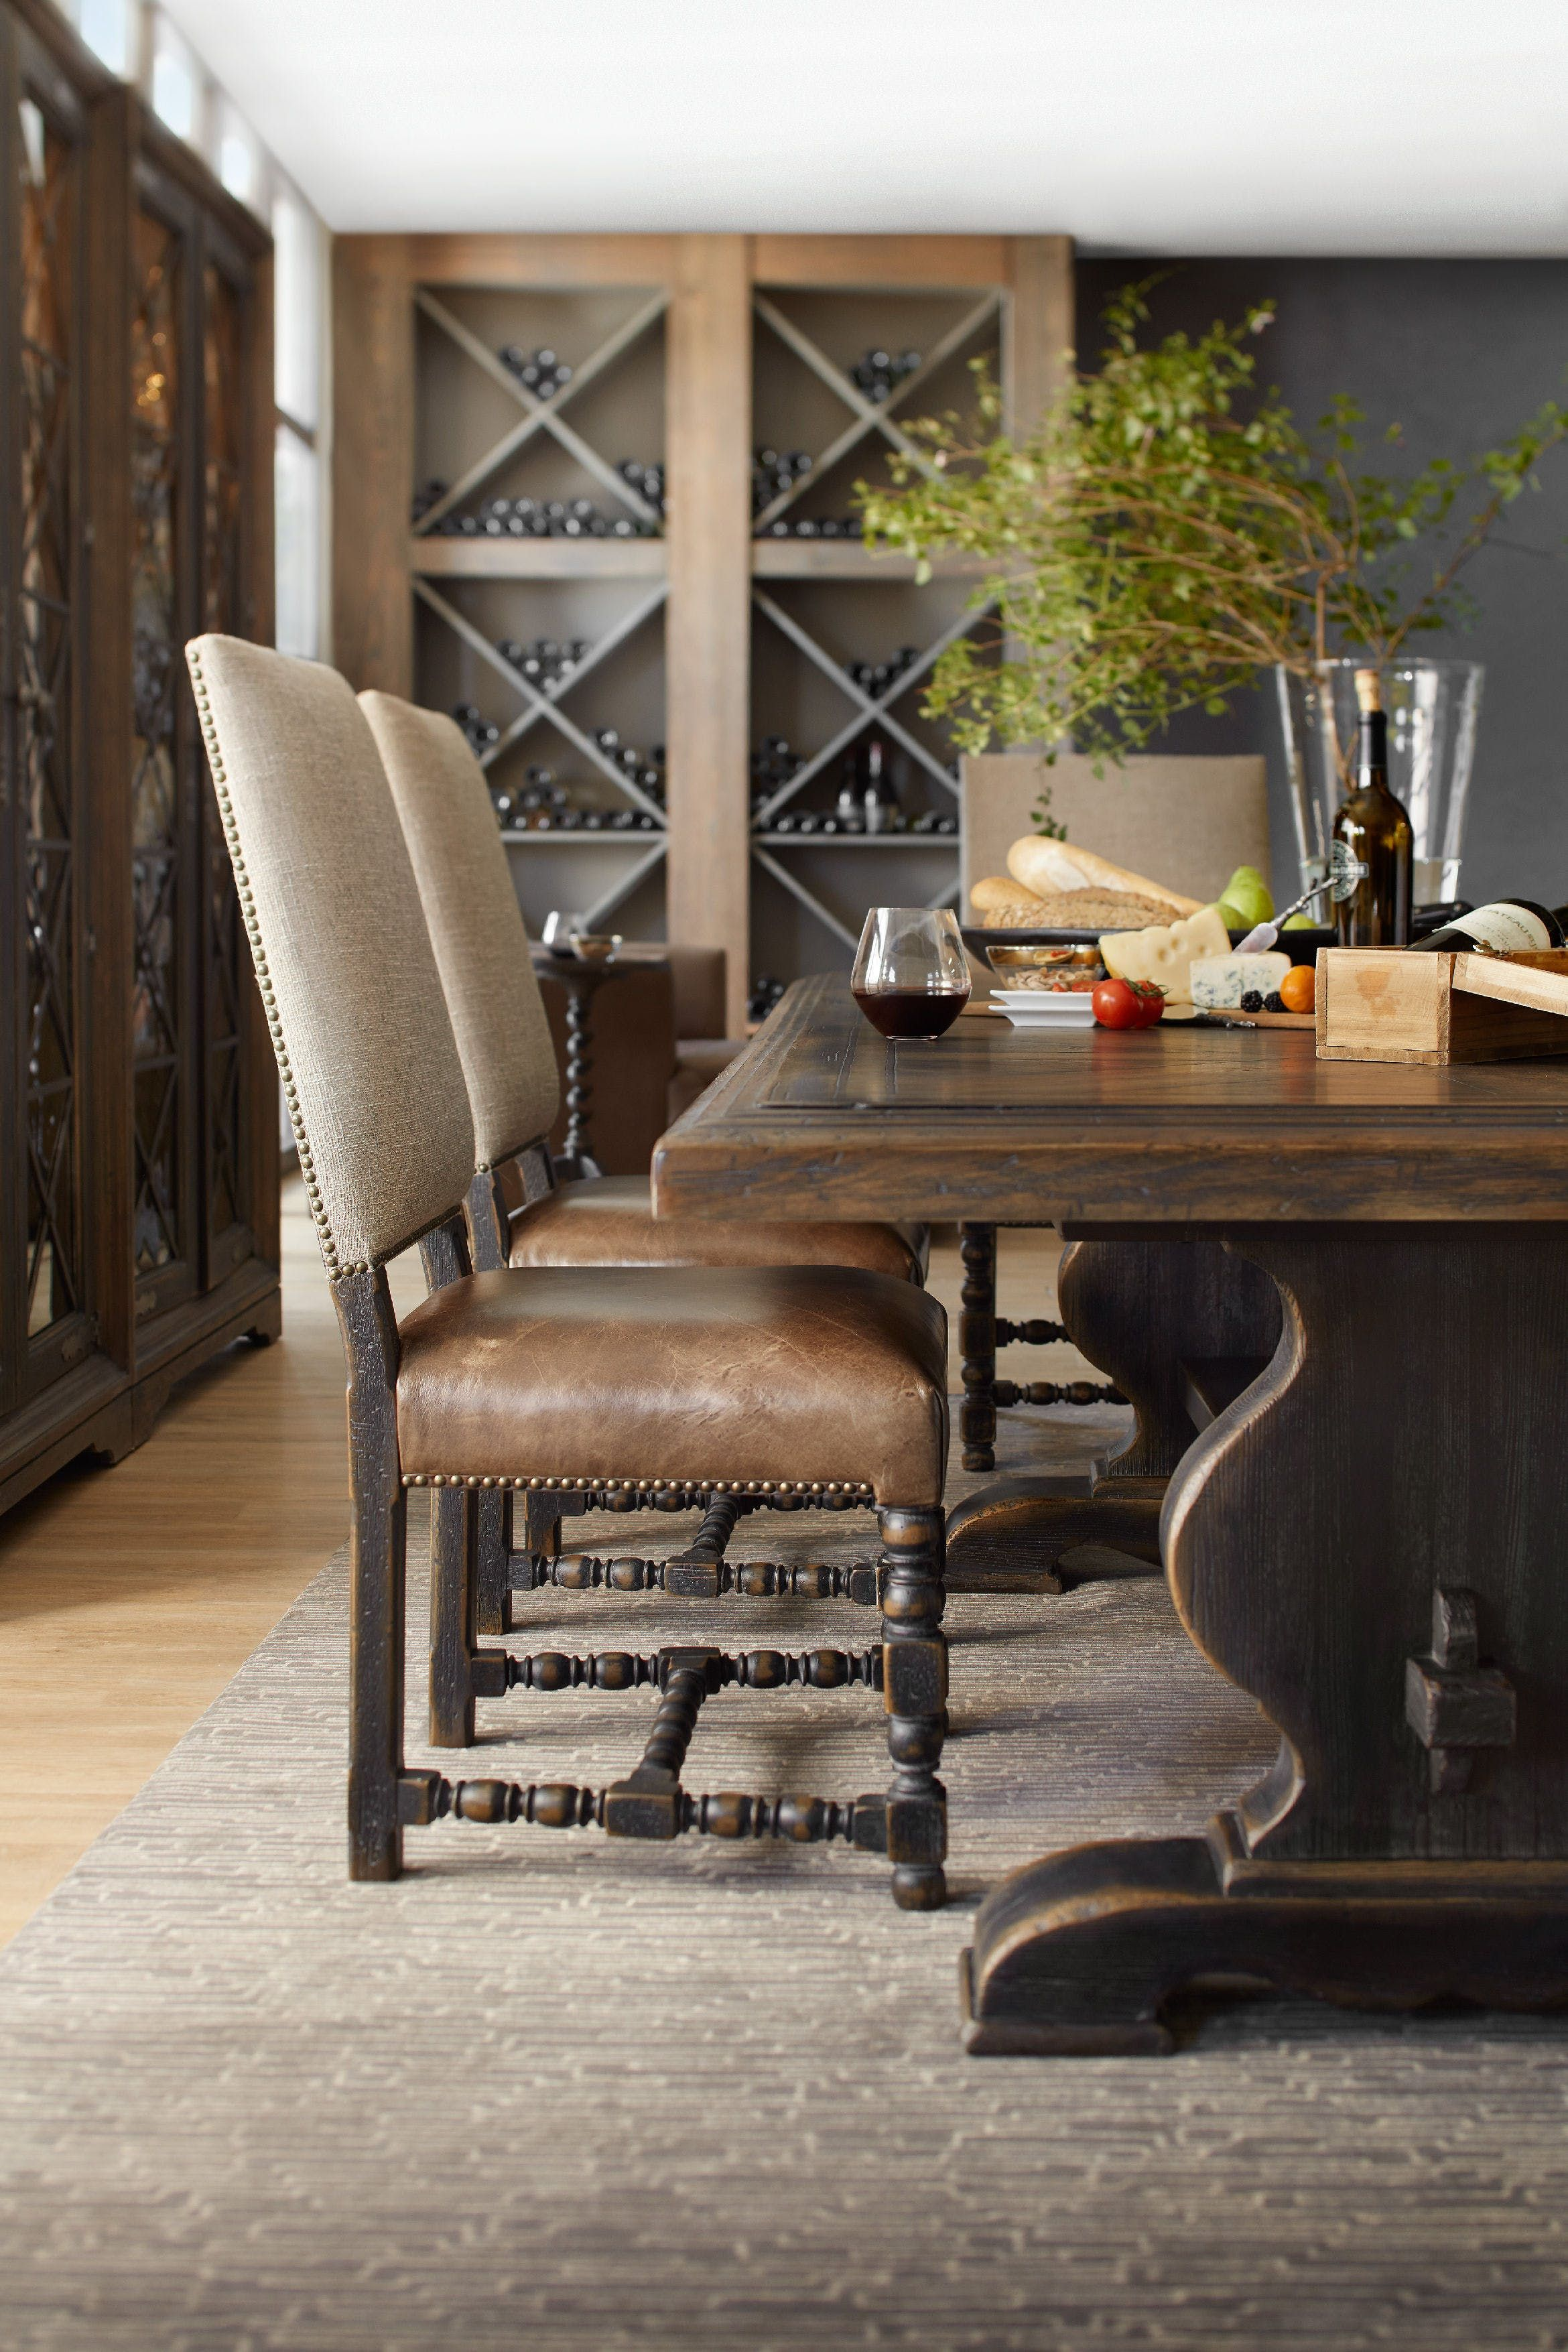 Great Inspired By The Most Beautiful Examples Of American Countryside, Hooker  Furnitureu0027s Hill Country Collection Imparts